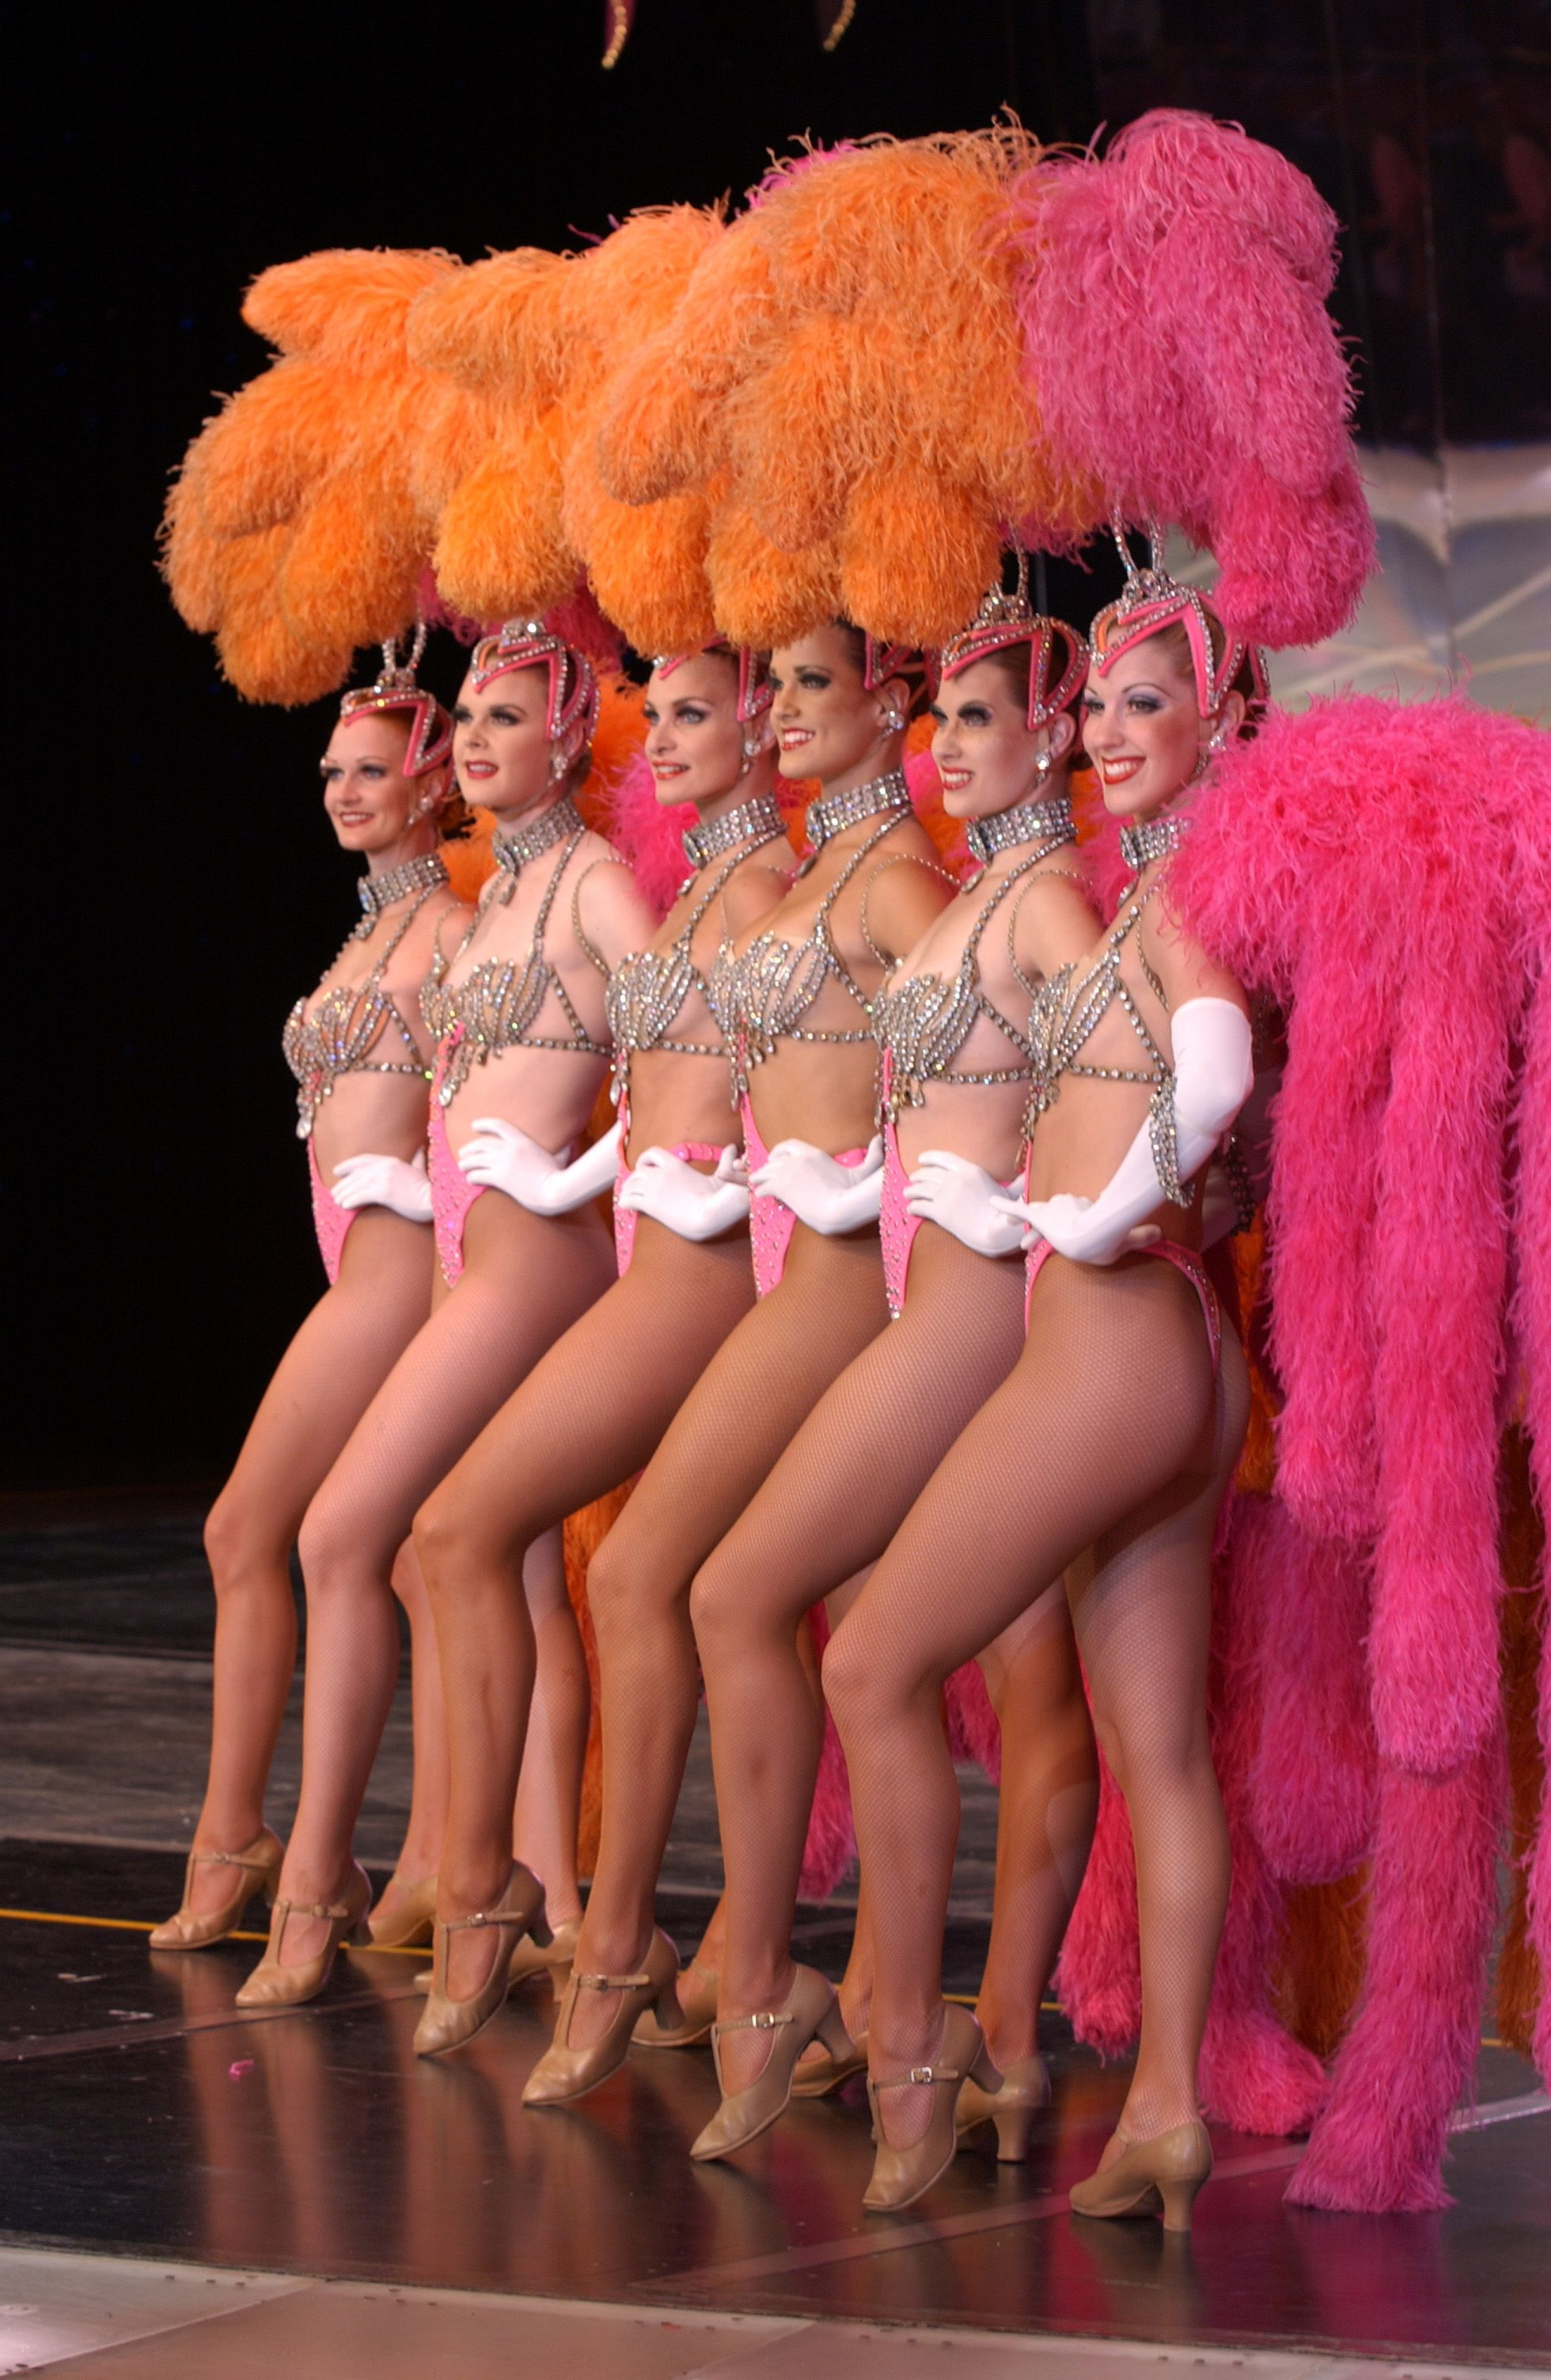 Are naked showgirls and cabaret girls think